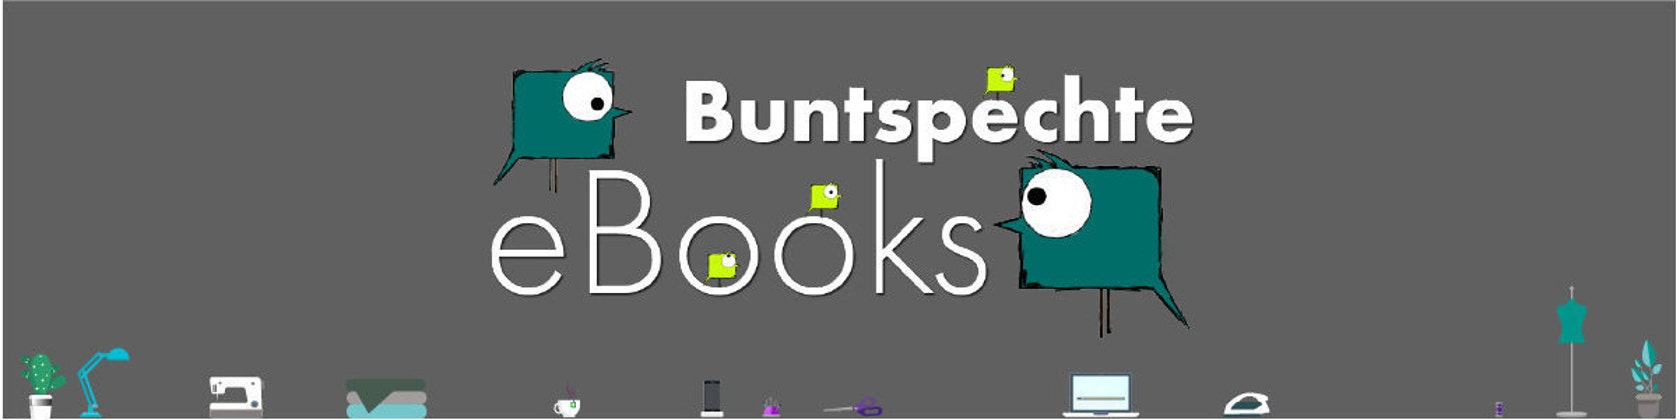 Buntspechte ebooks by buntspechte on etsy buntspechte buntspechte ebooks fandeluxe Image collections